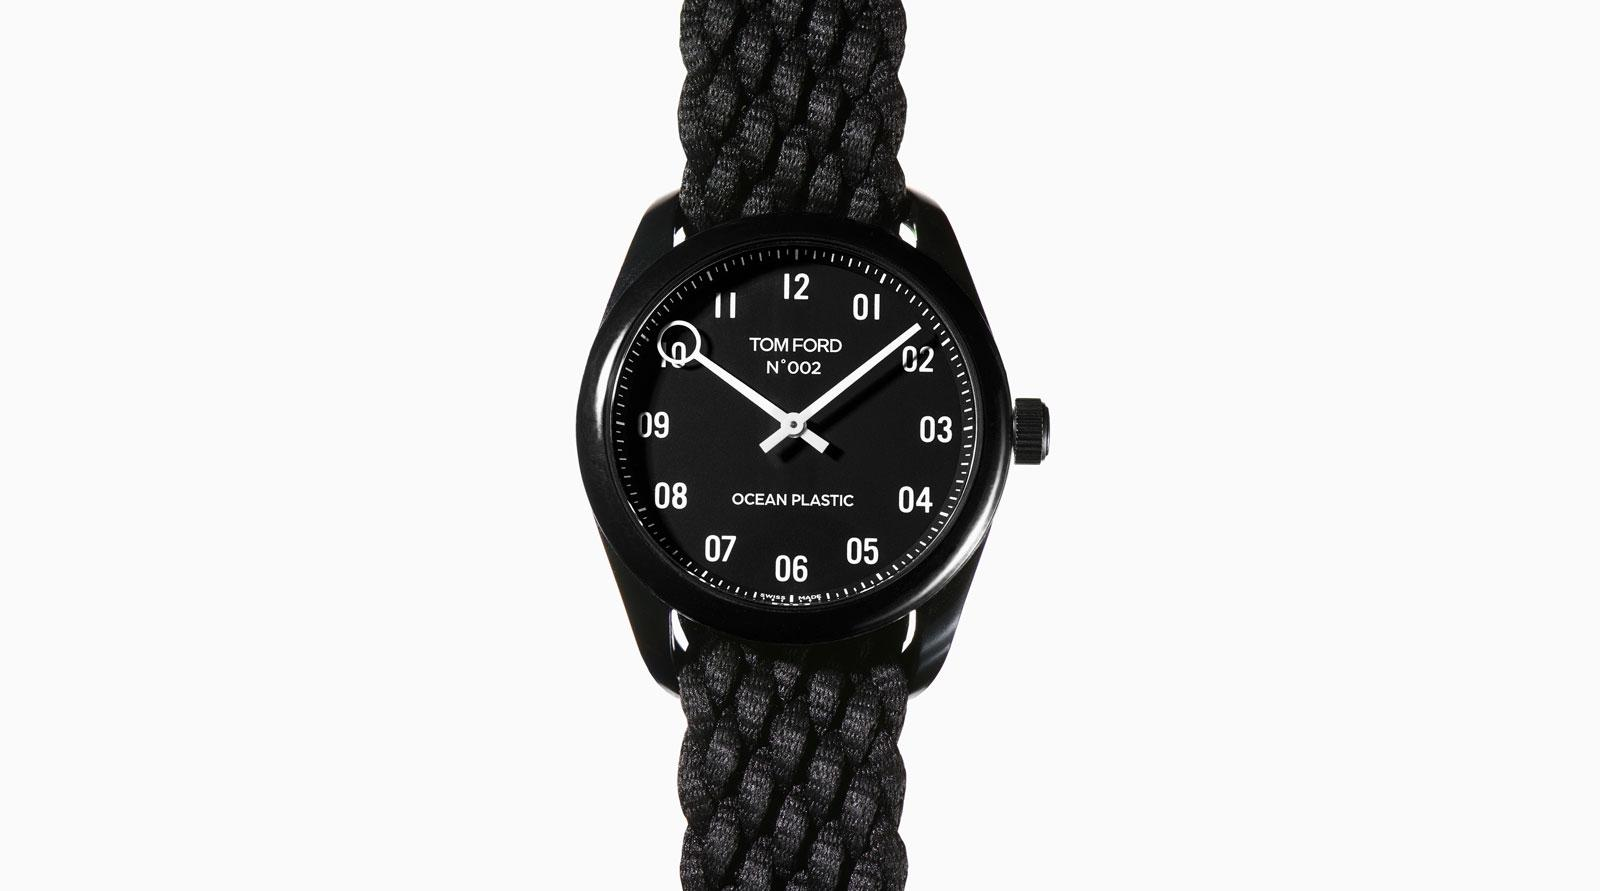 Sustainable luxury watch brands from Tom Ford